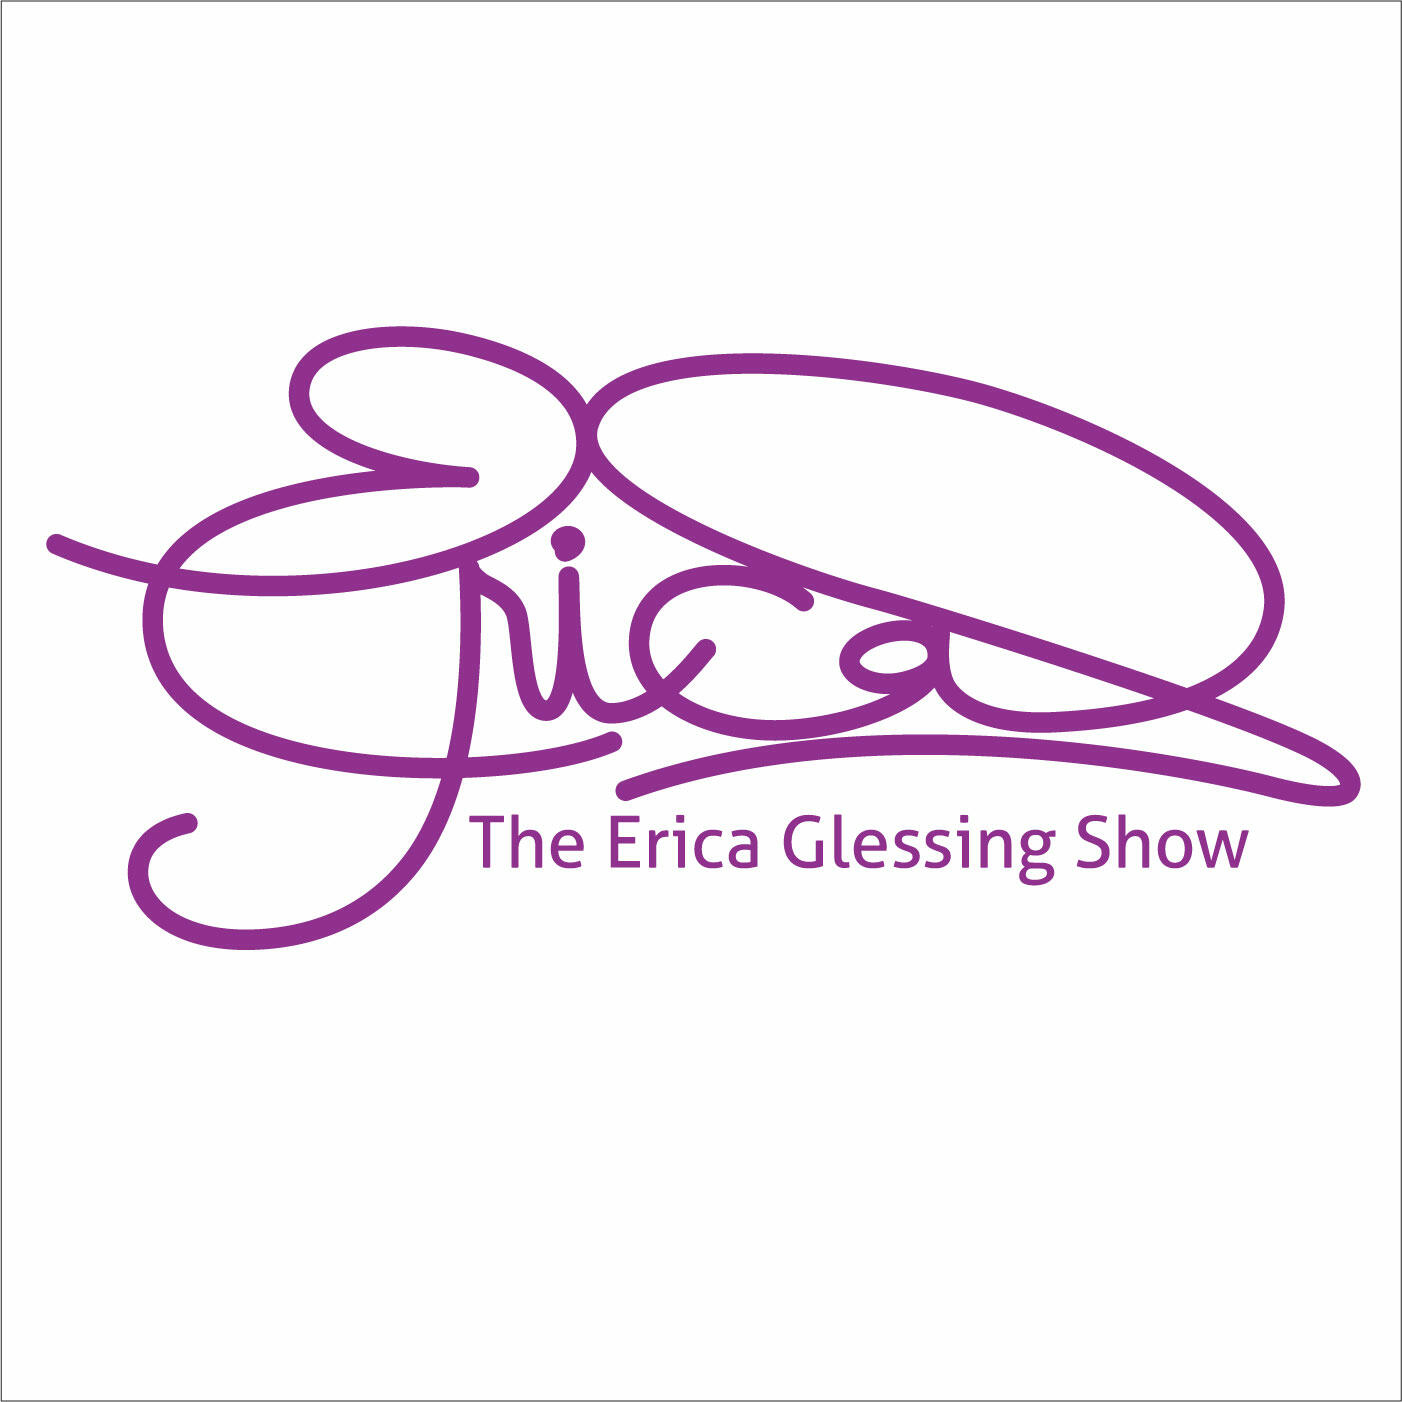 The Erica Glessing Show